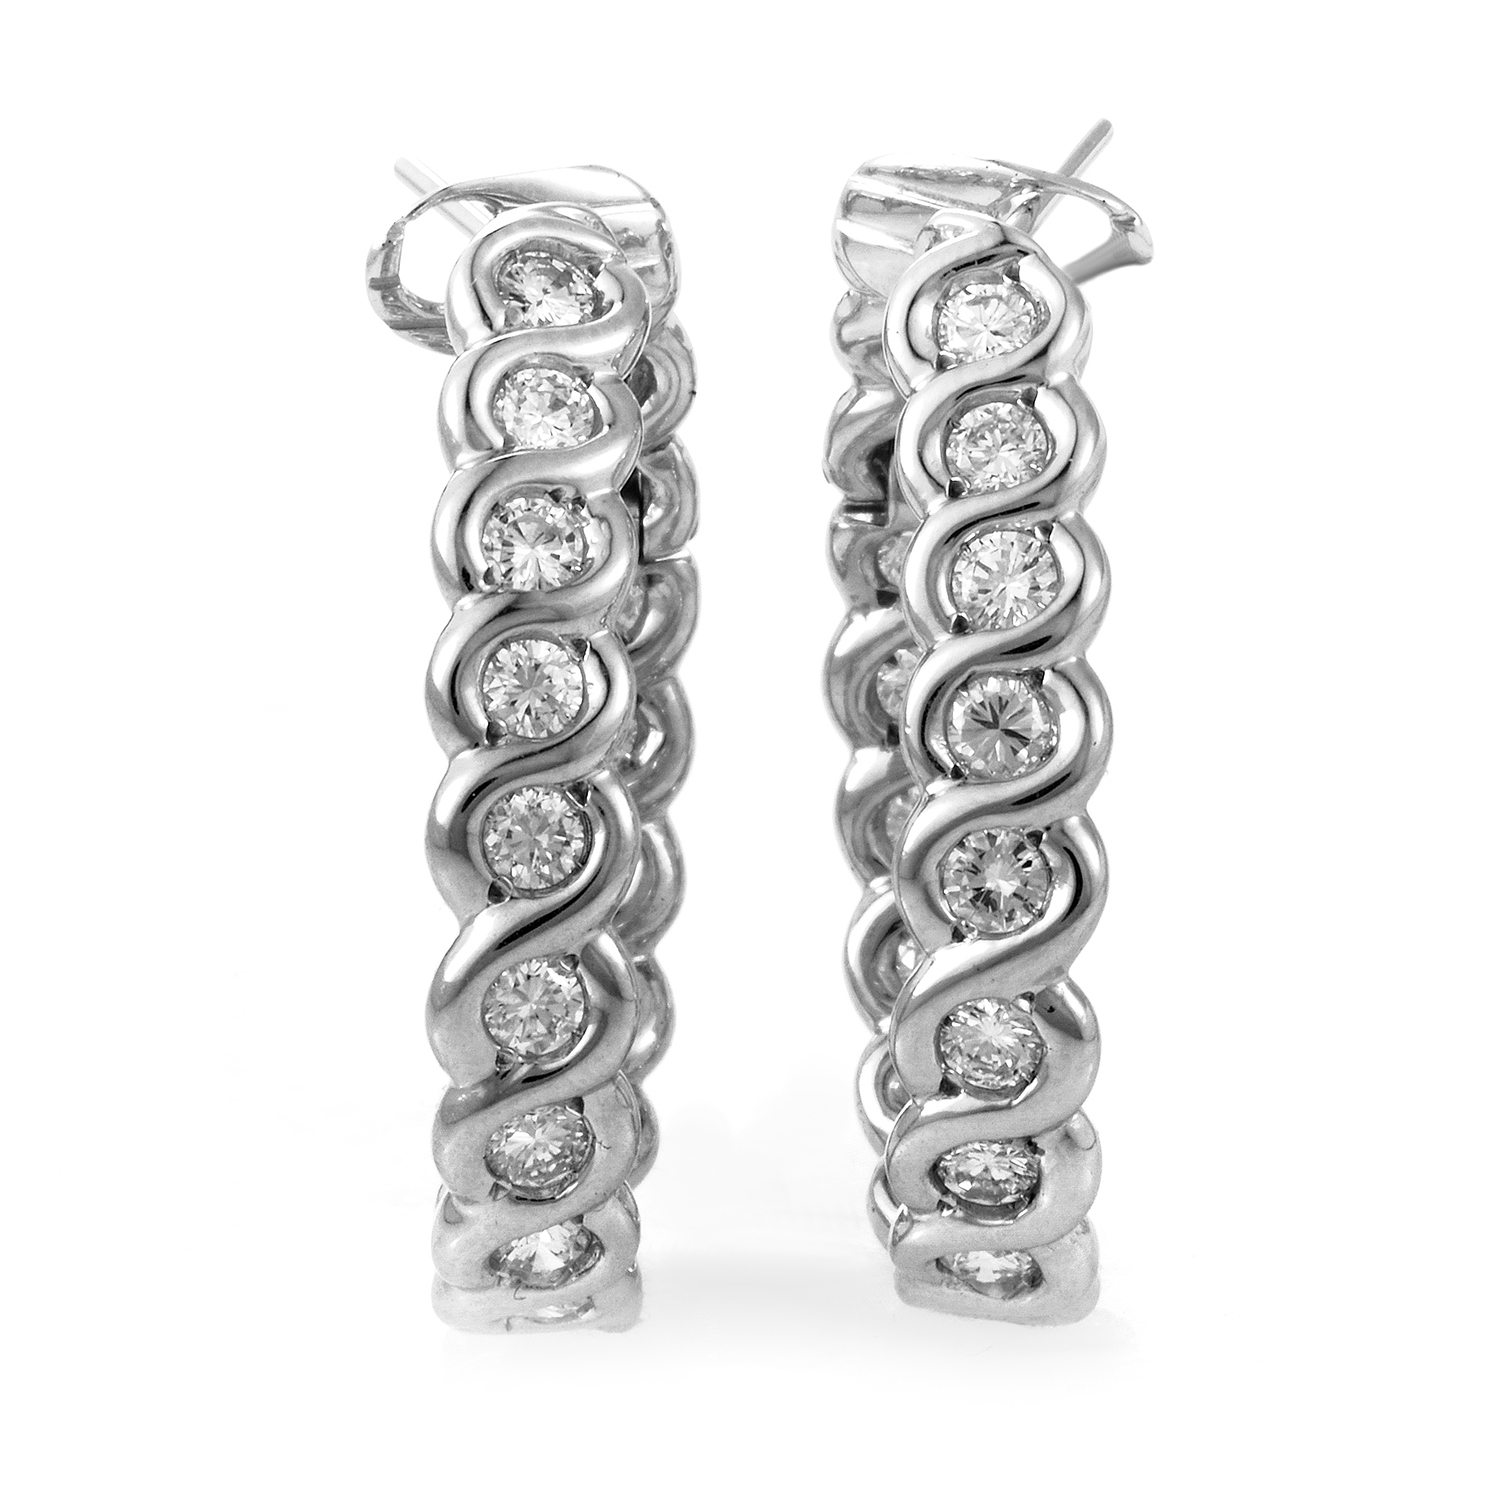 Van Cleef & Arpels 18K White Gold Diamond Hoop Earrings